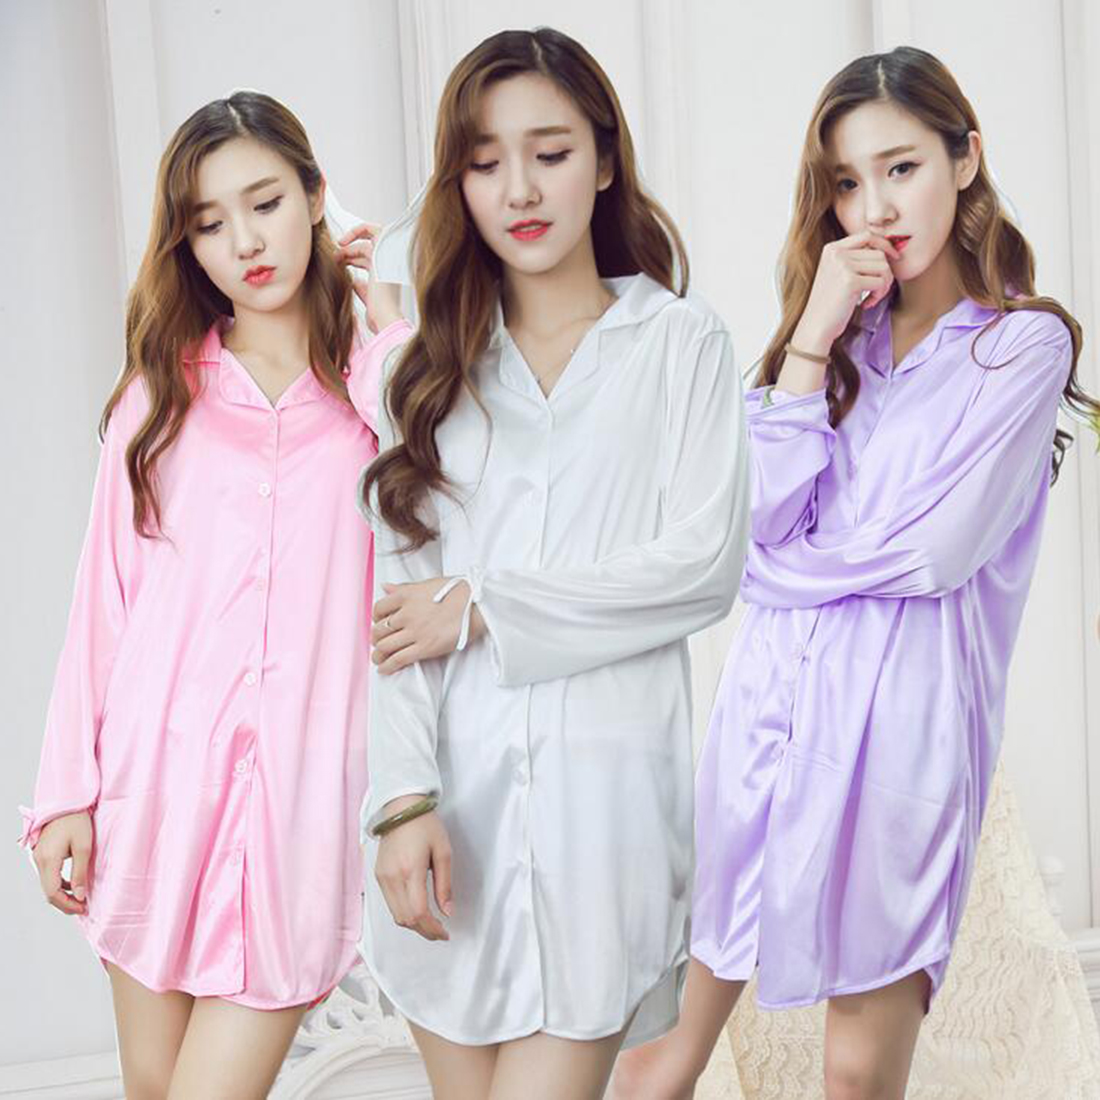 Knee Length Purple White Pink Nigh Dress Women Button Up Long Sleeve Silk Nightgown Sleepwear Nightwear